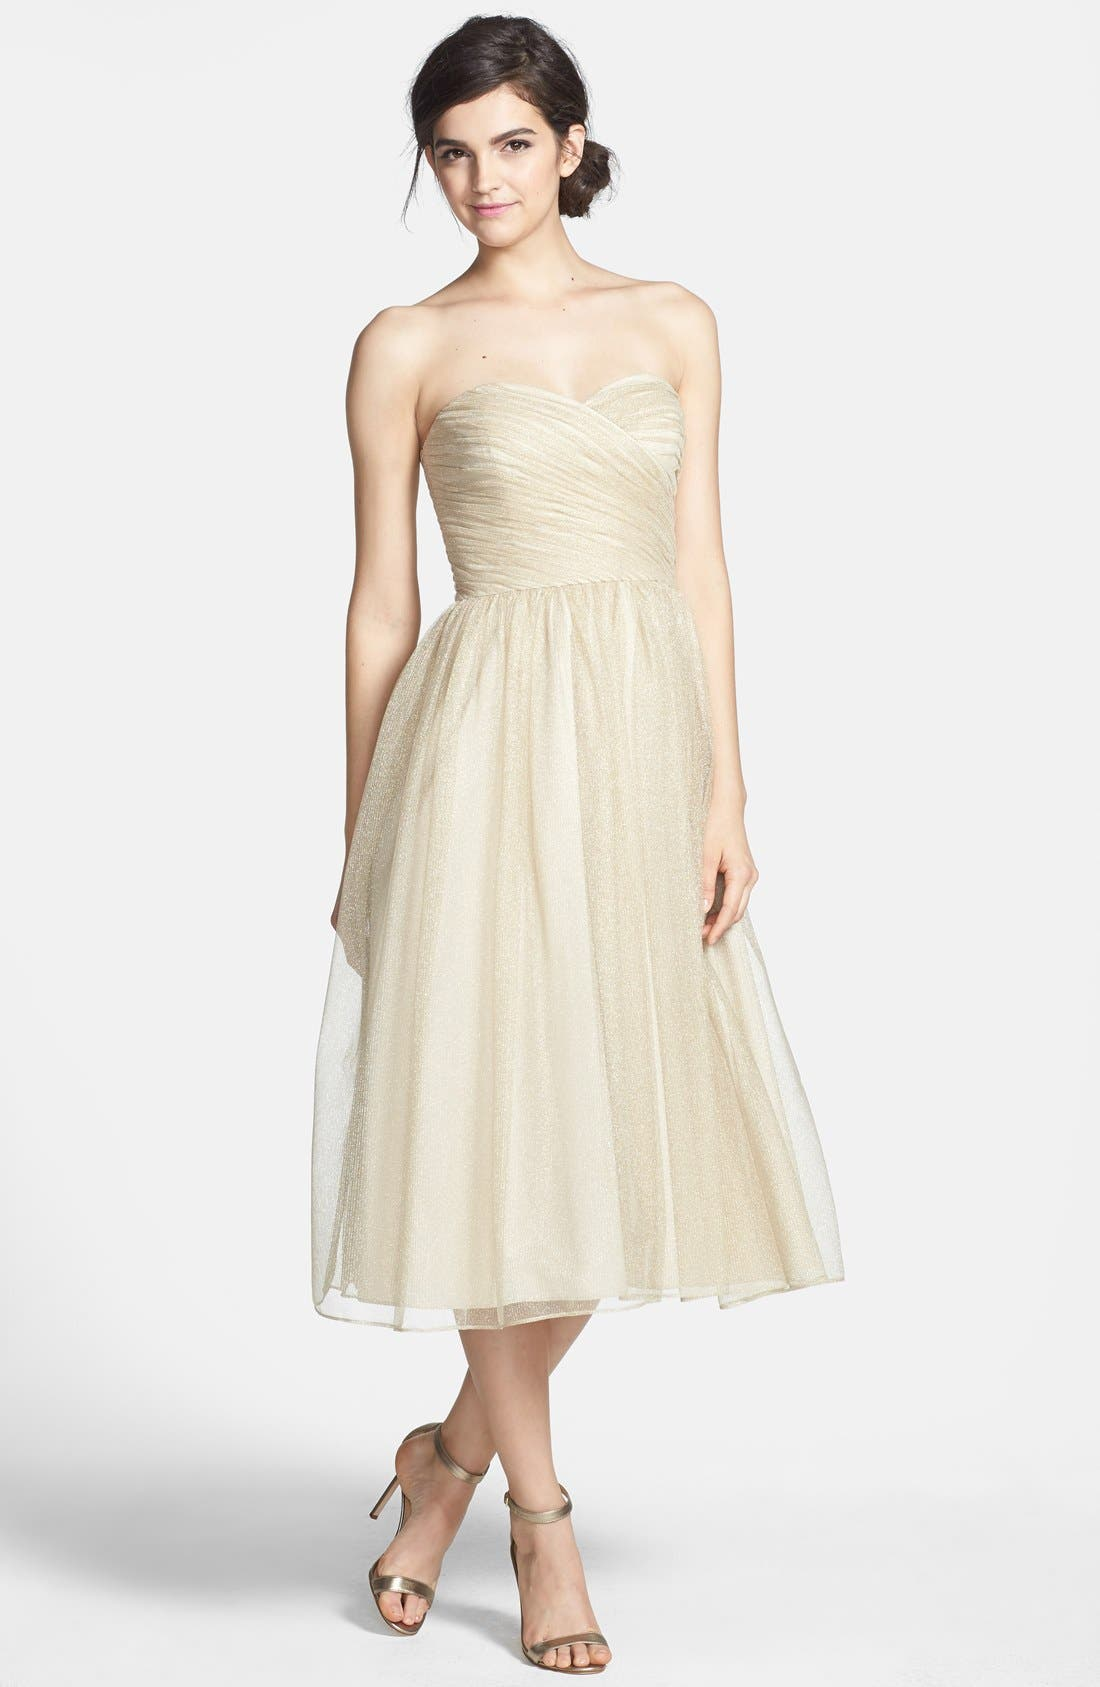 Alternate Image 1 Selected - Aidan Mattox Ruched Metallic Tea Length Tulle Fit & Flare Dress